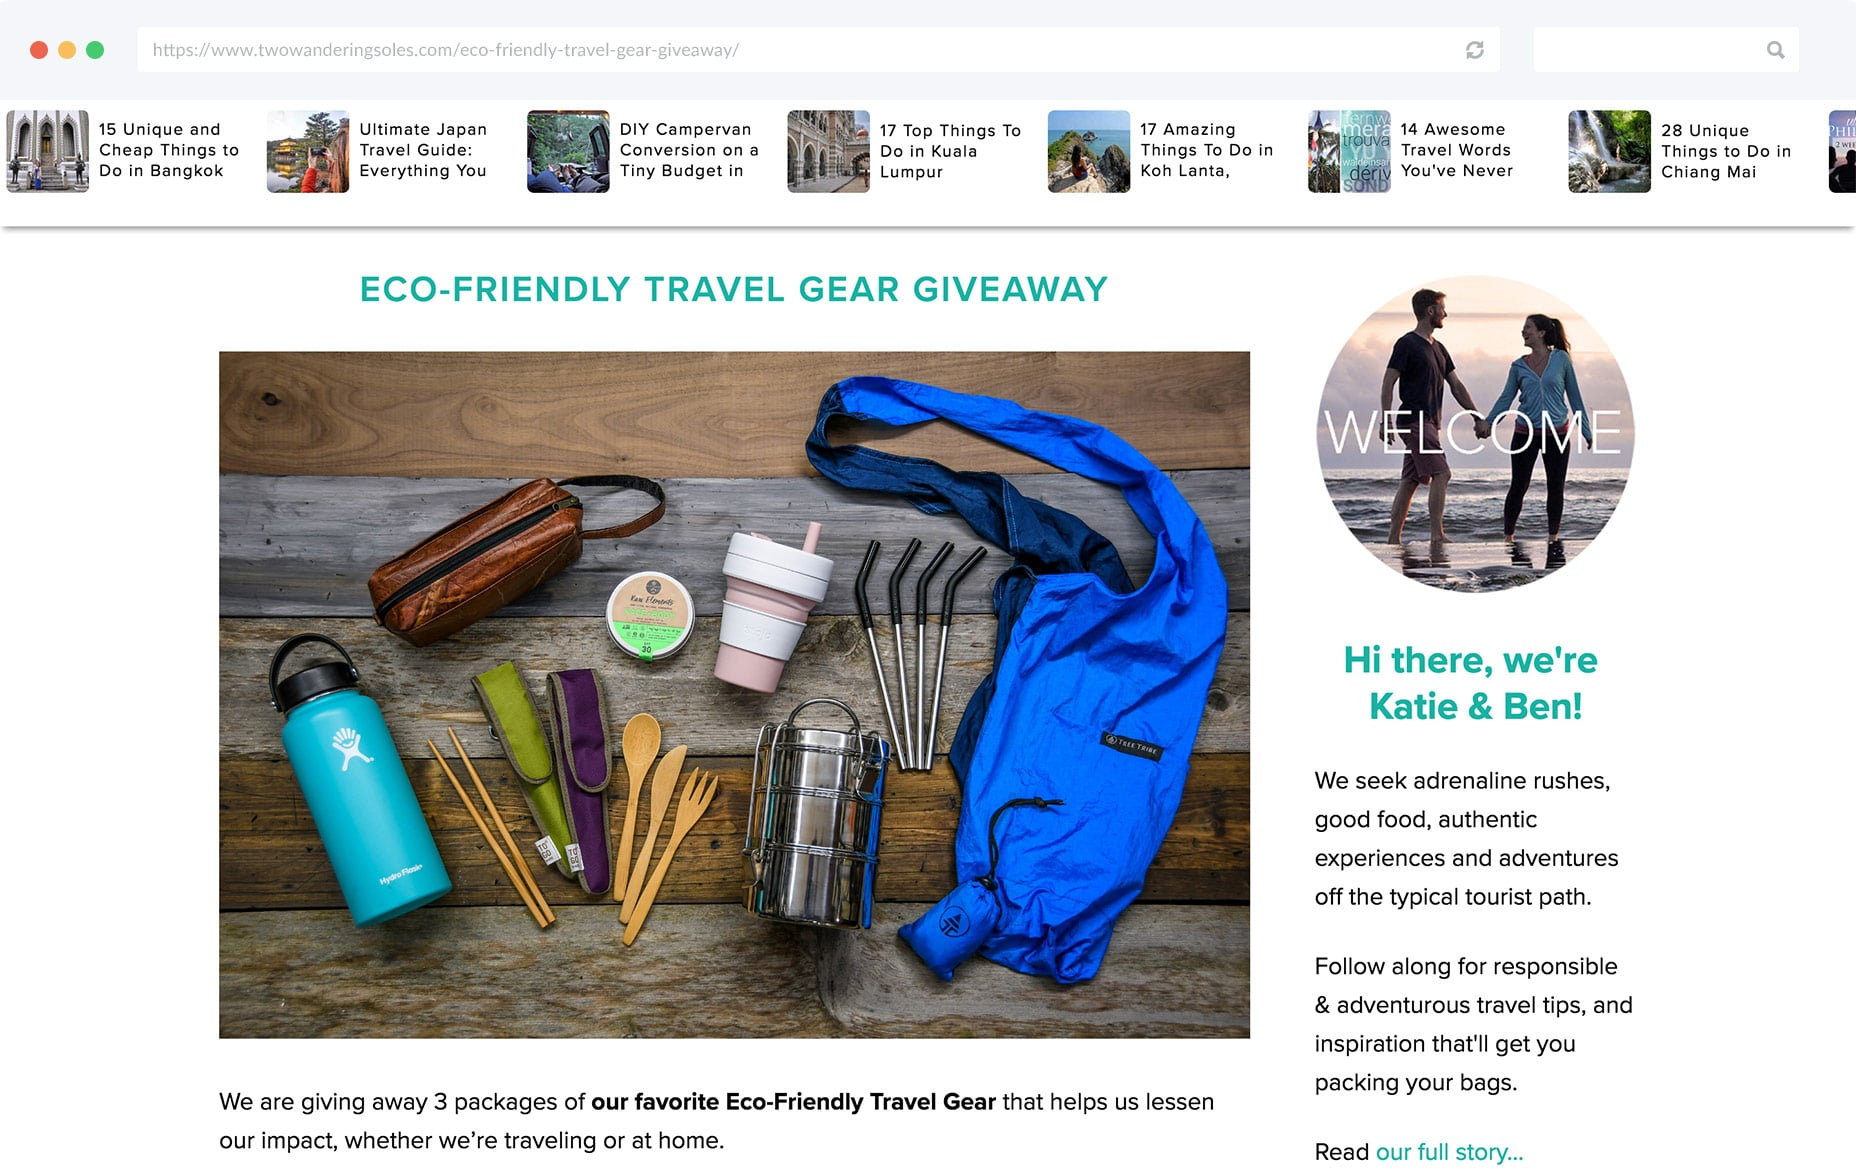 Bloggers can give away relevant products